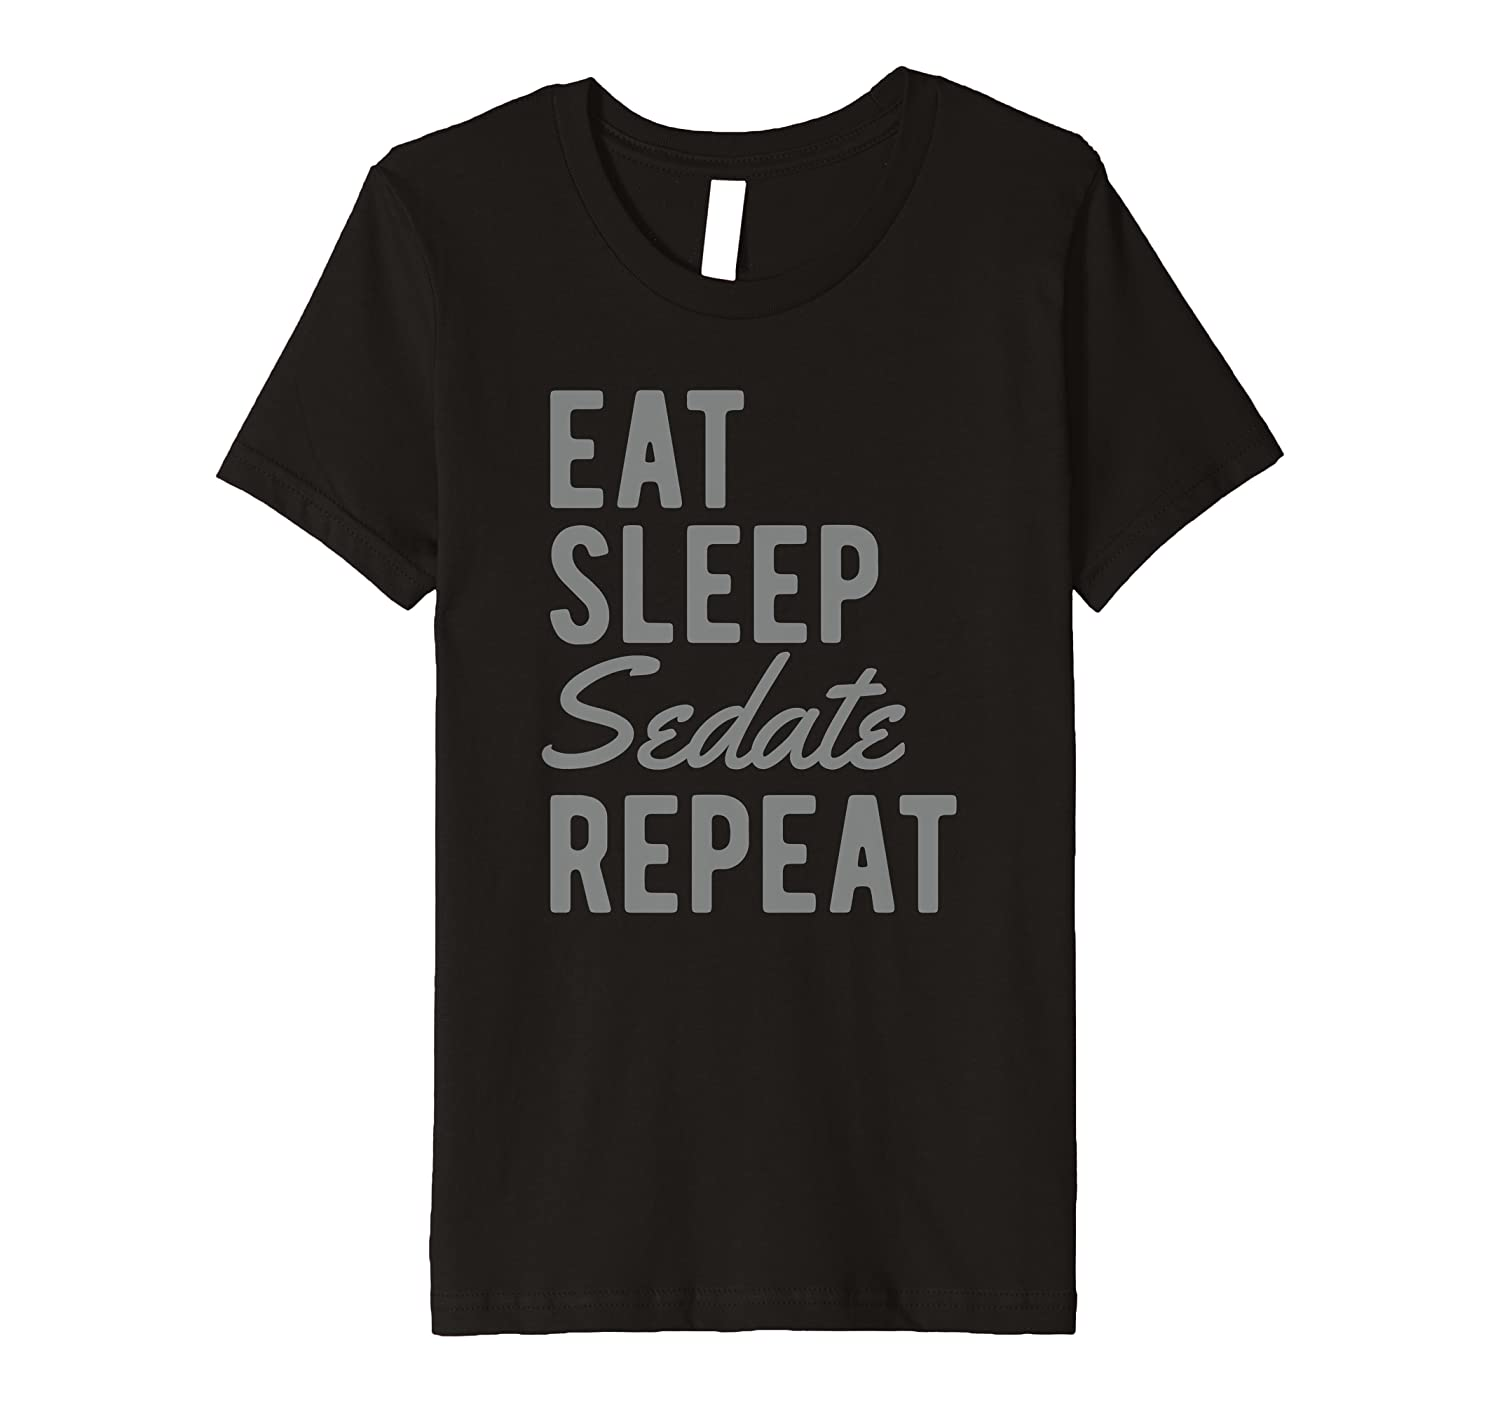 Anesthesia Anesthesiologist T-Shirt Eat Sleep Sedate Repeat